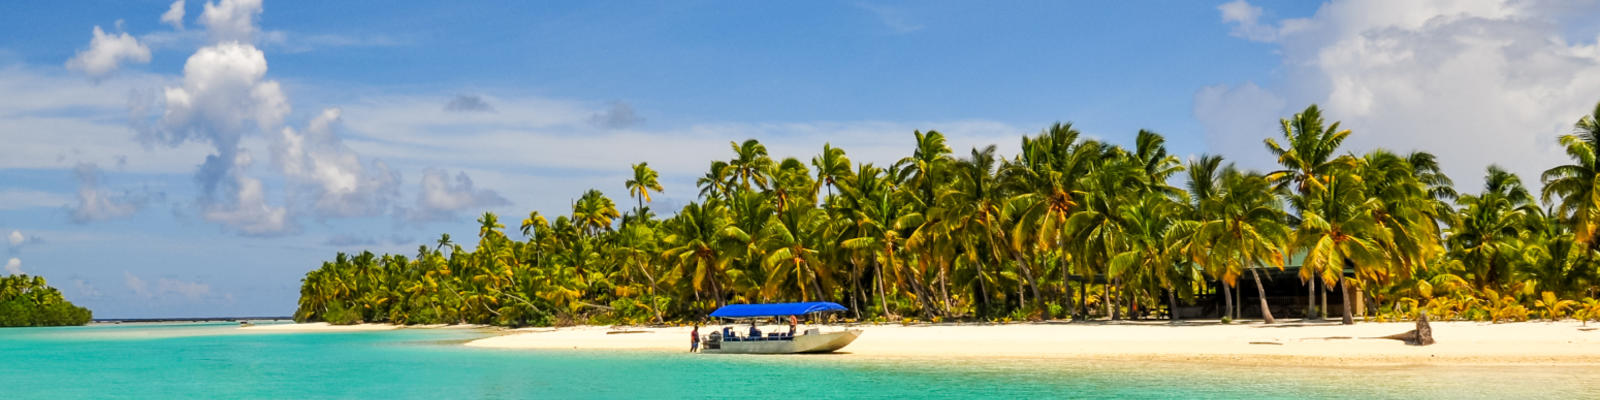 Top things to do in Rarotonga